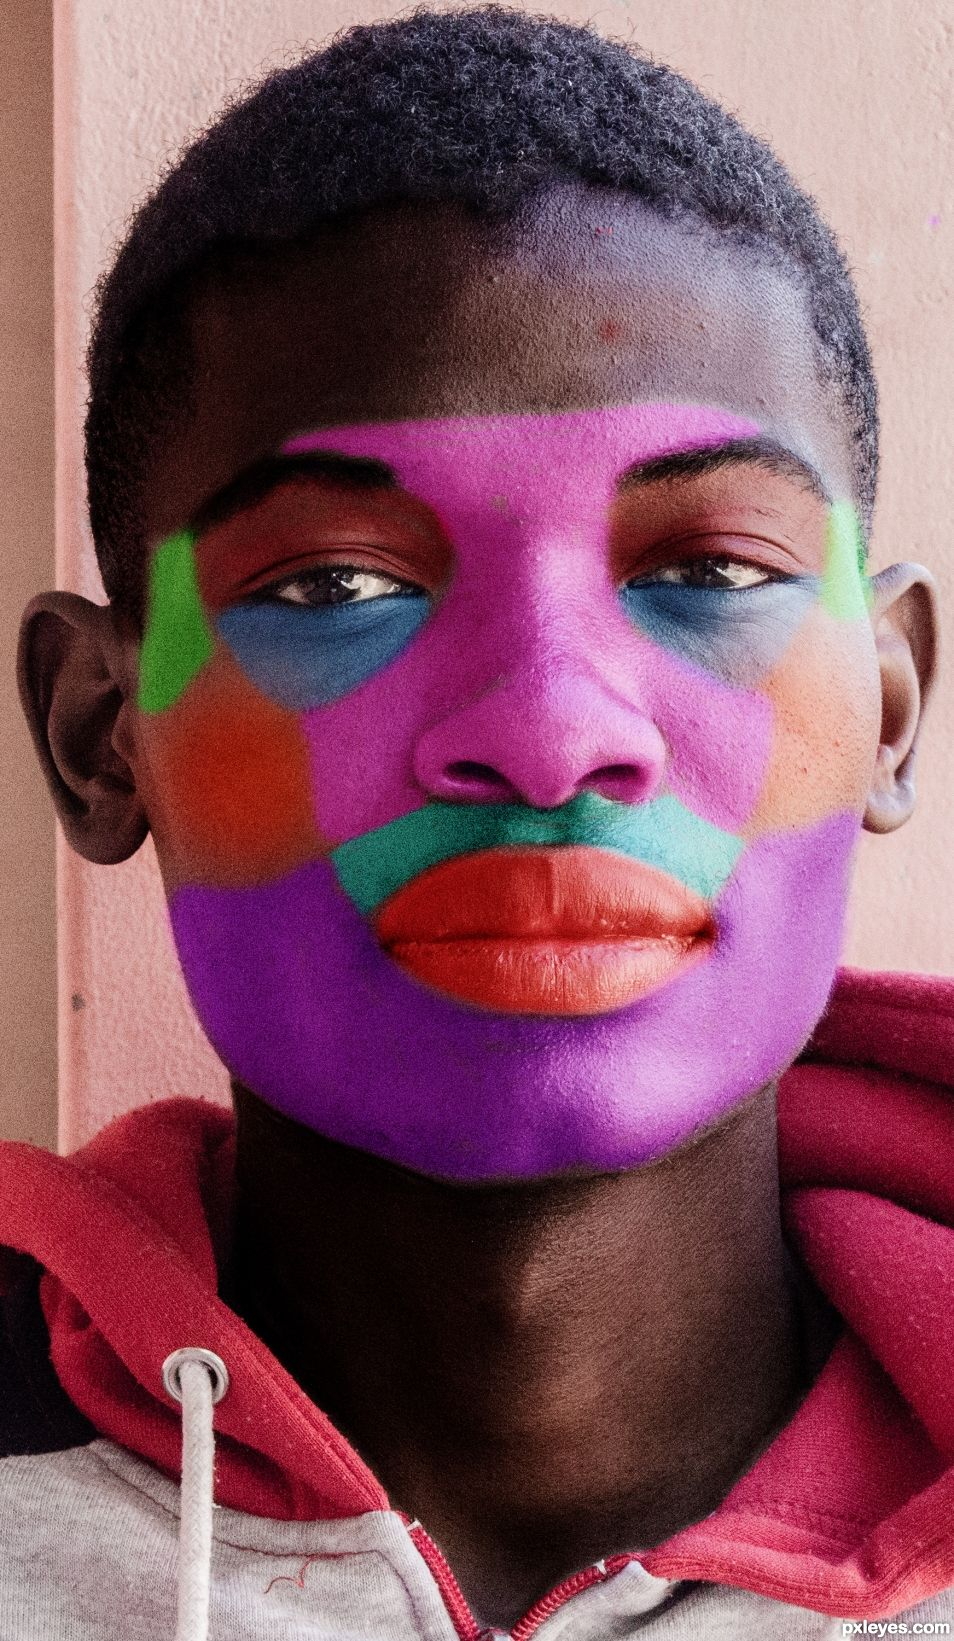 The Man of Colors